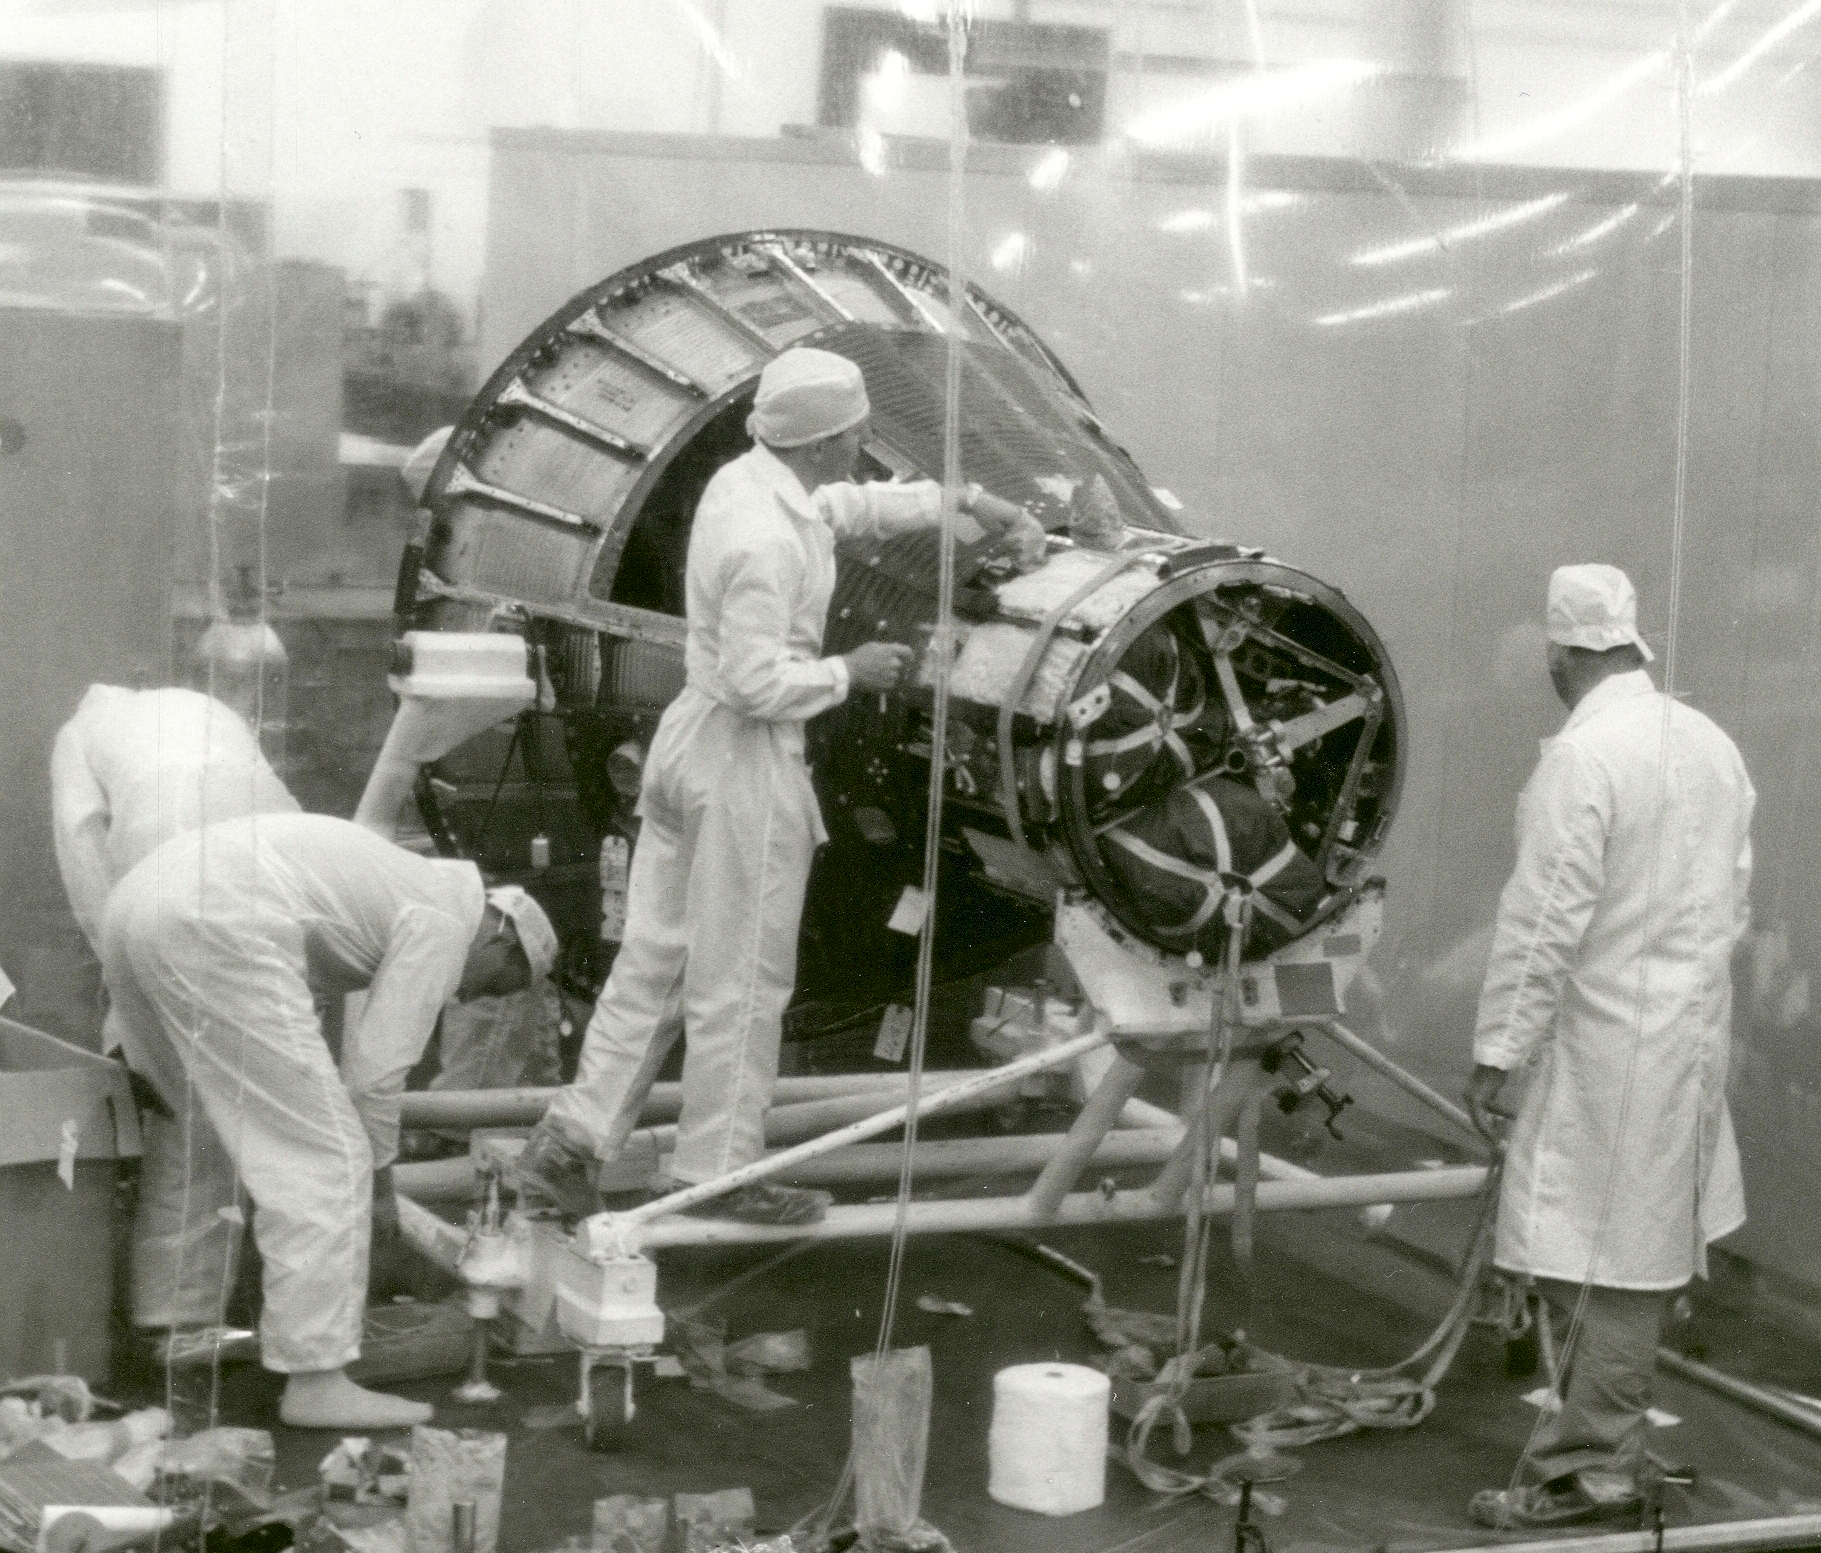 Technicians_working_in_the_McDonnell_White_Room_on_the_Mercury-crop